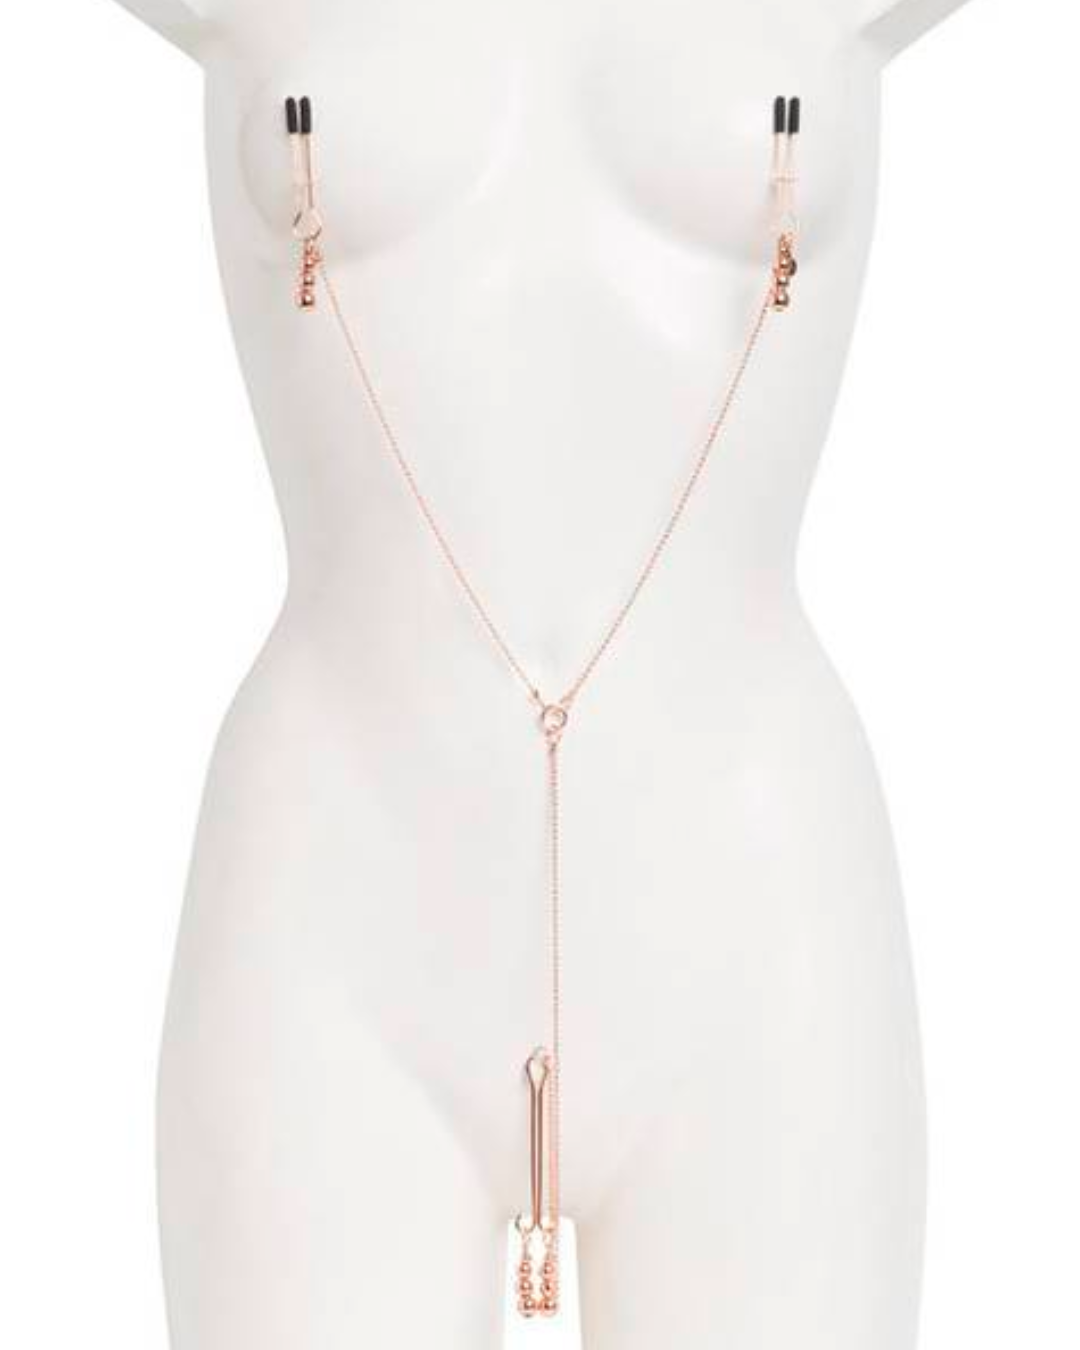 Fifty Shades Freed All Sensation Nipple & Clitoral Chain on a mannequin